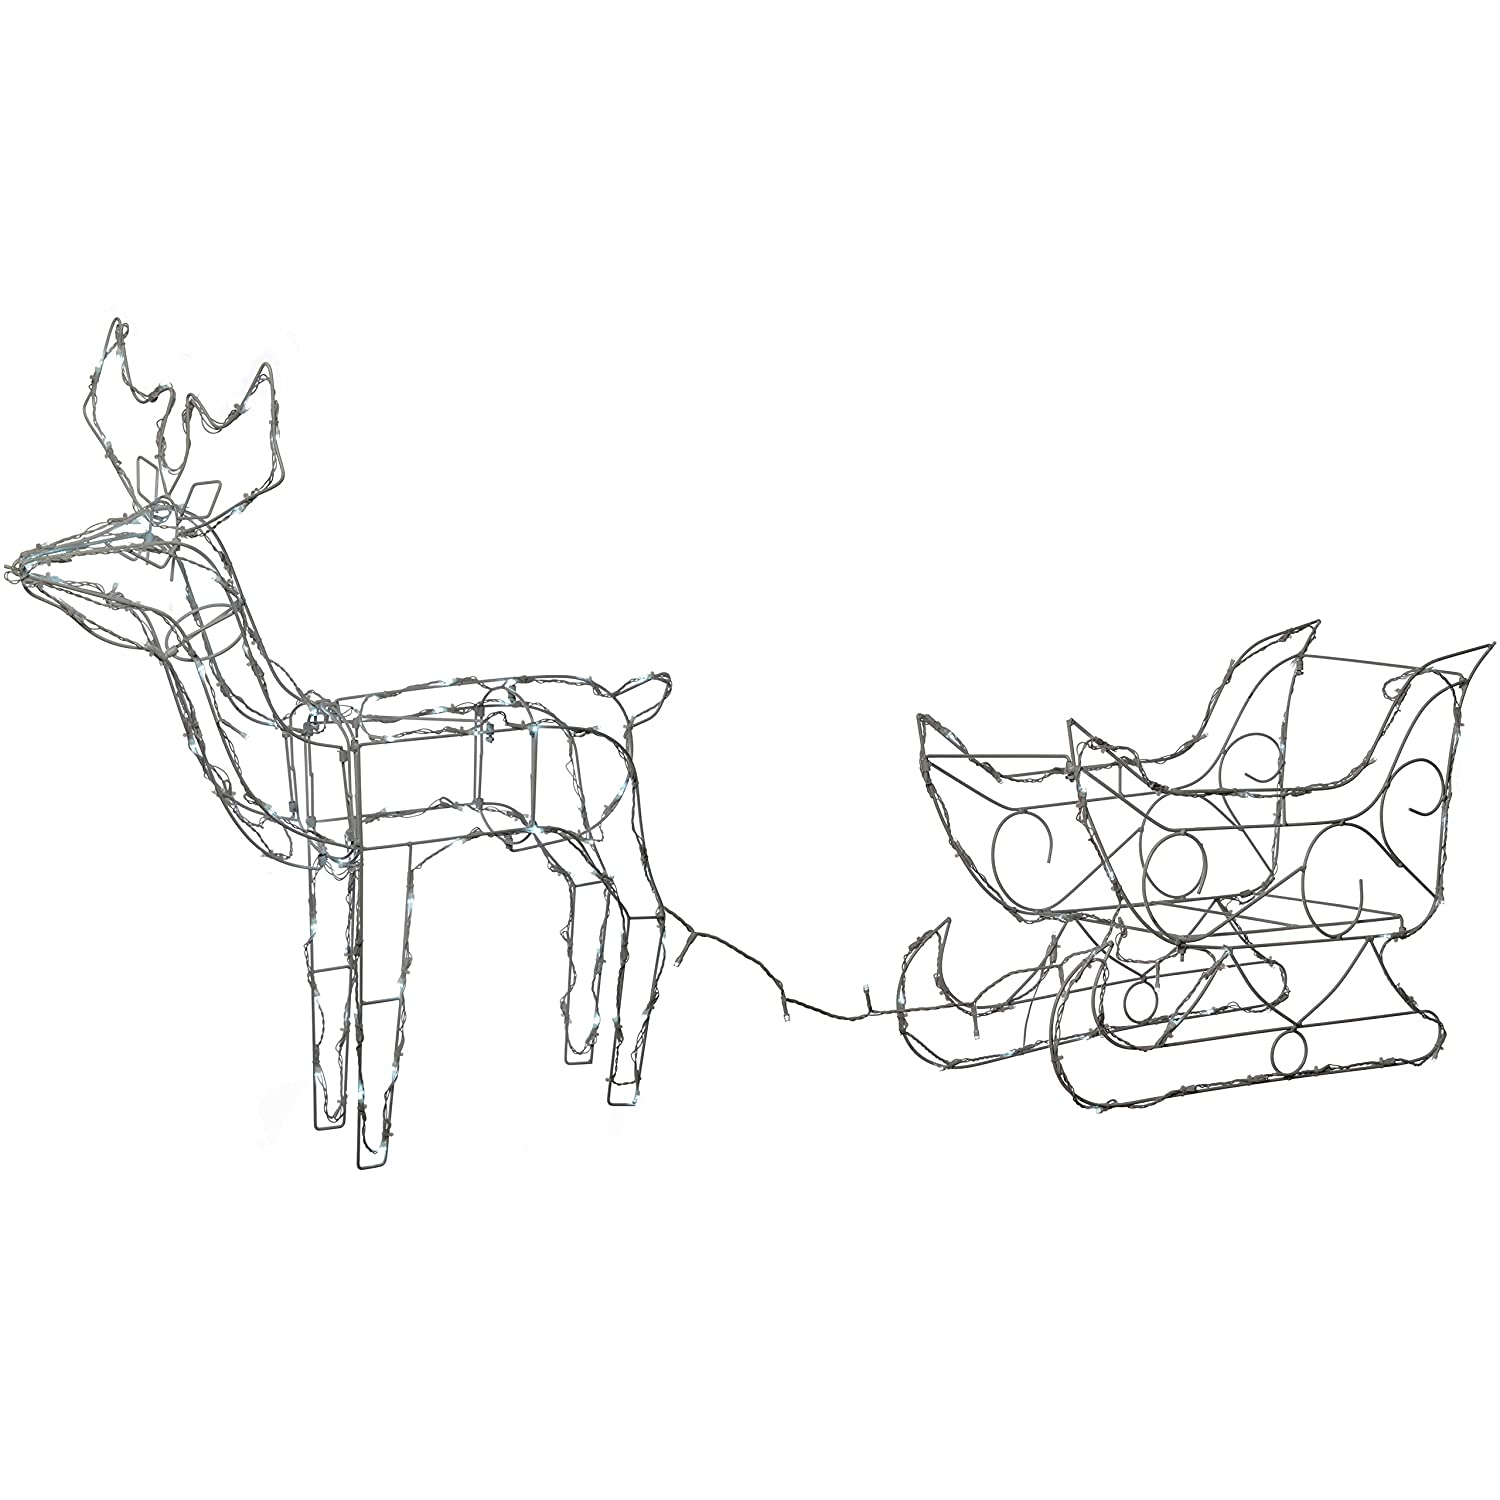 6410c98894 WeRChristmas Pre-Lit Animated Multi-Function Reindeer and Sleigh  Silhouette